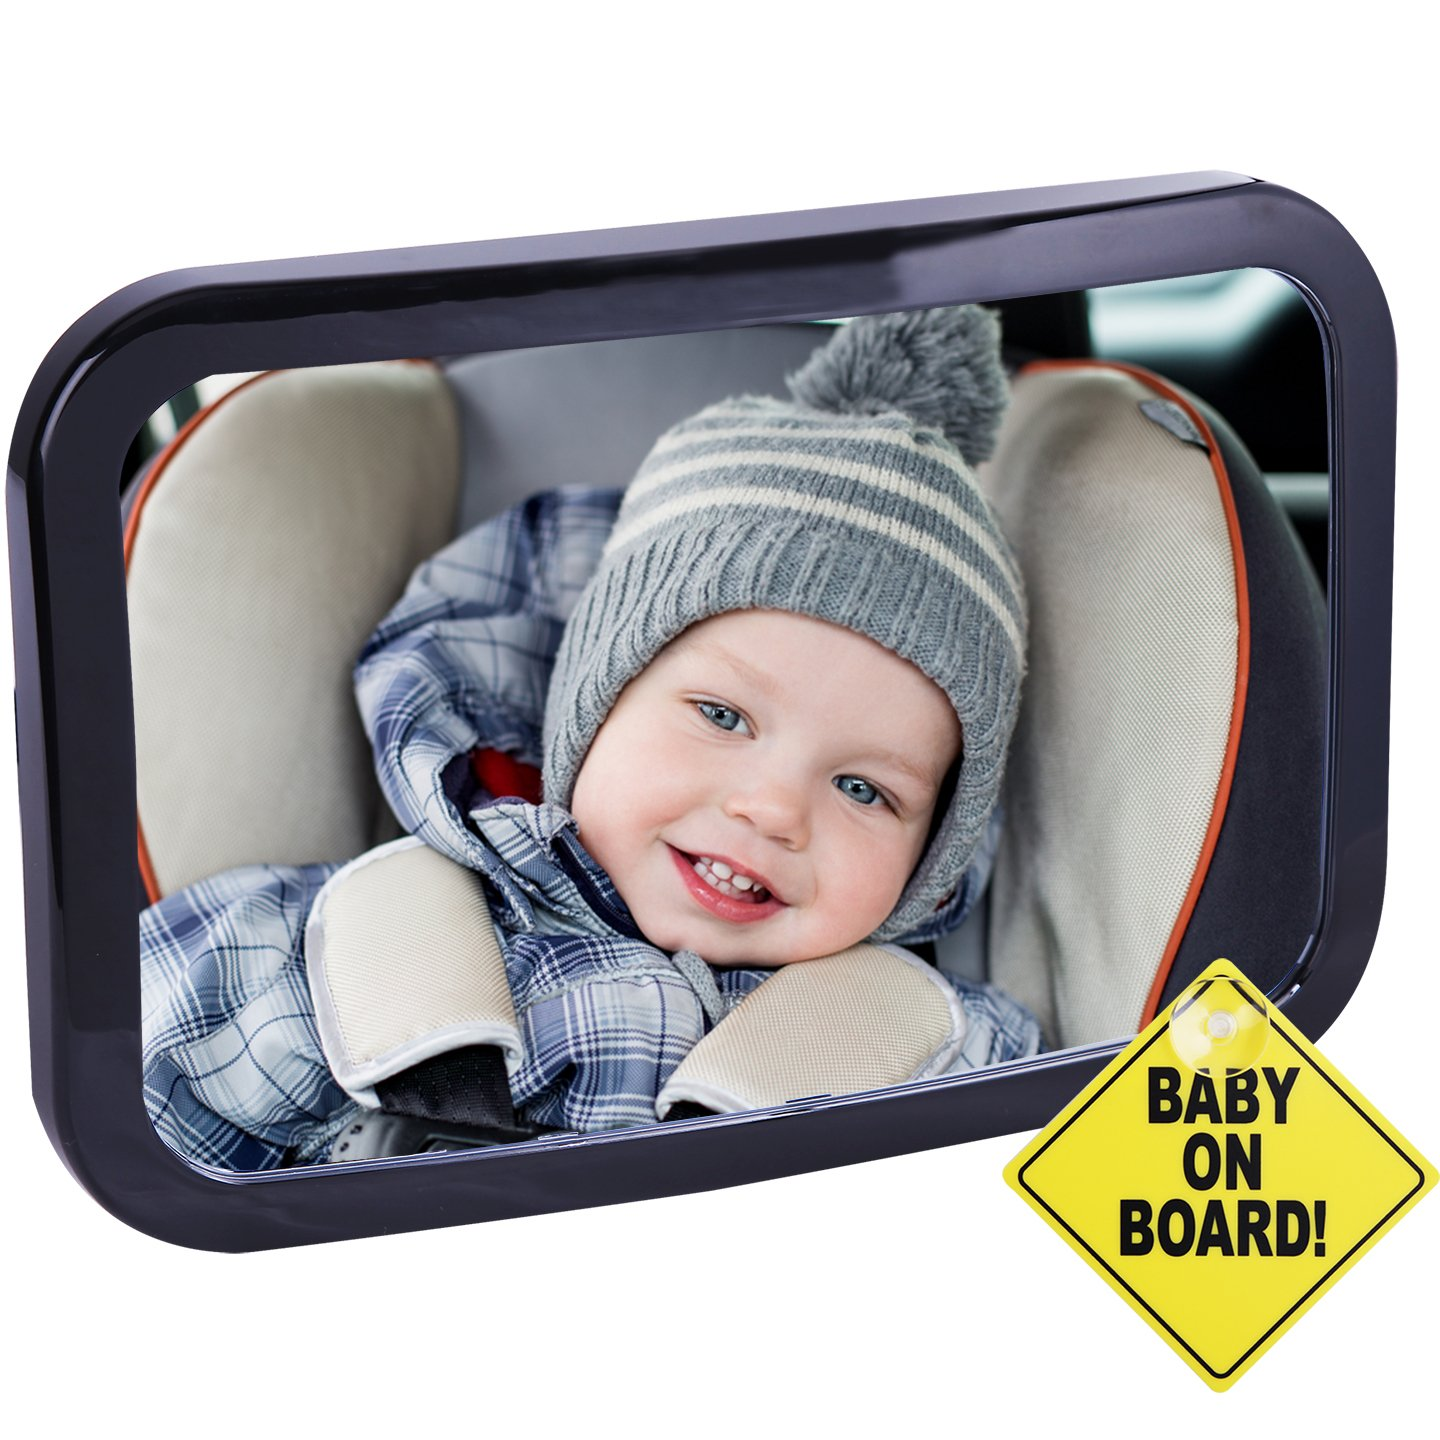 CARTMAN Baby Car Mirror 360 Adjustable & Double Straps with Baby on Board Sign by CARTMAN